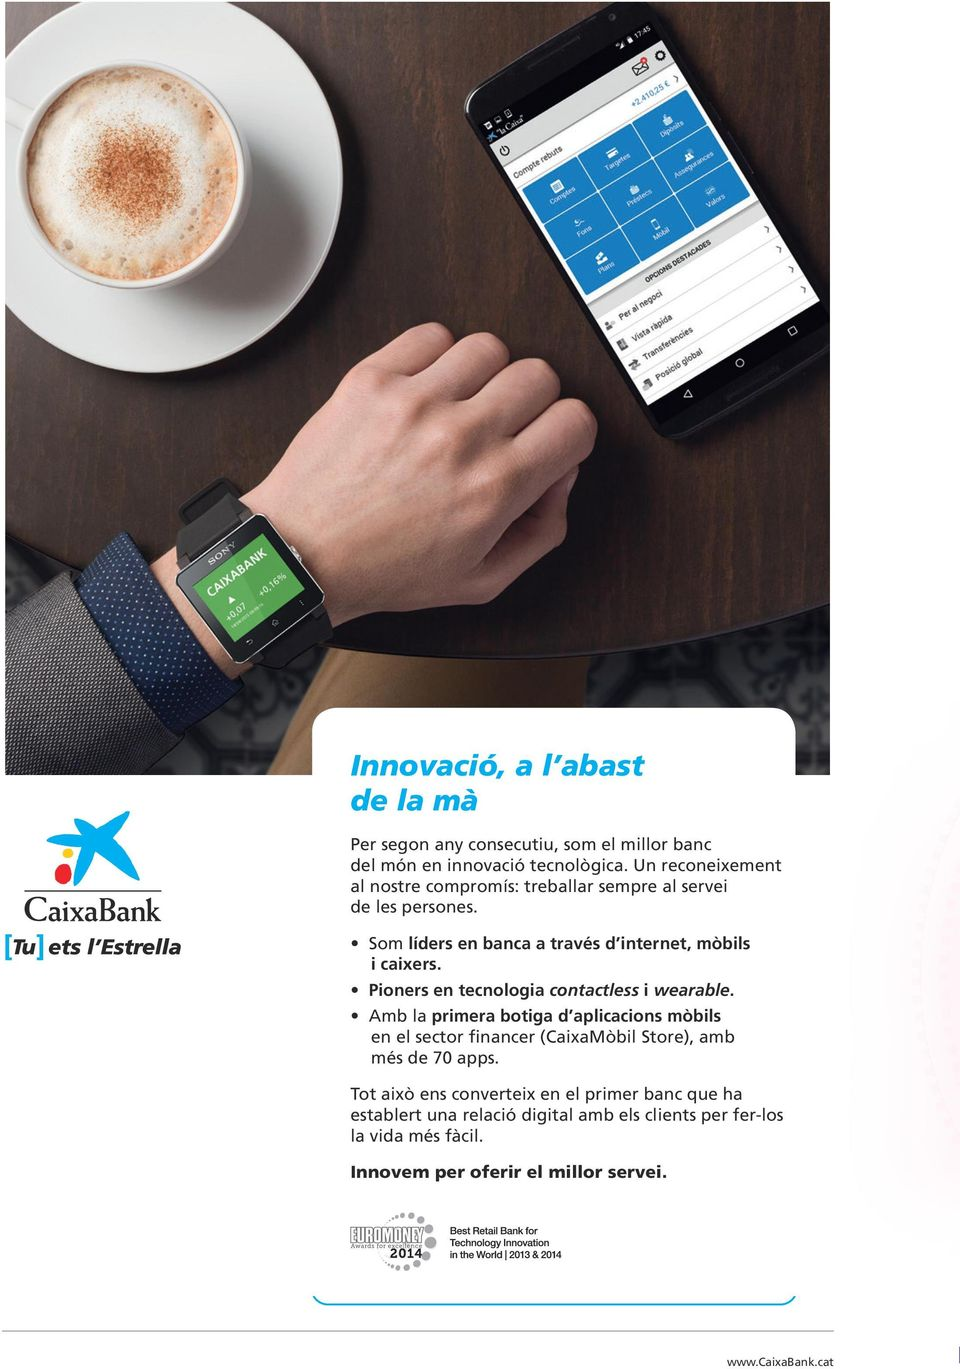 Pioners en tecnologia contactless i wearable.